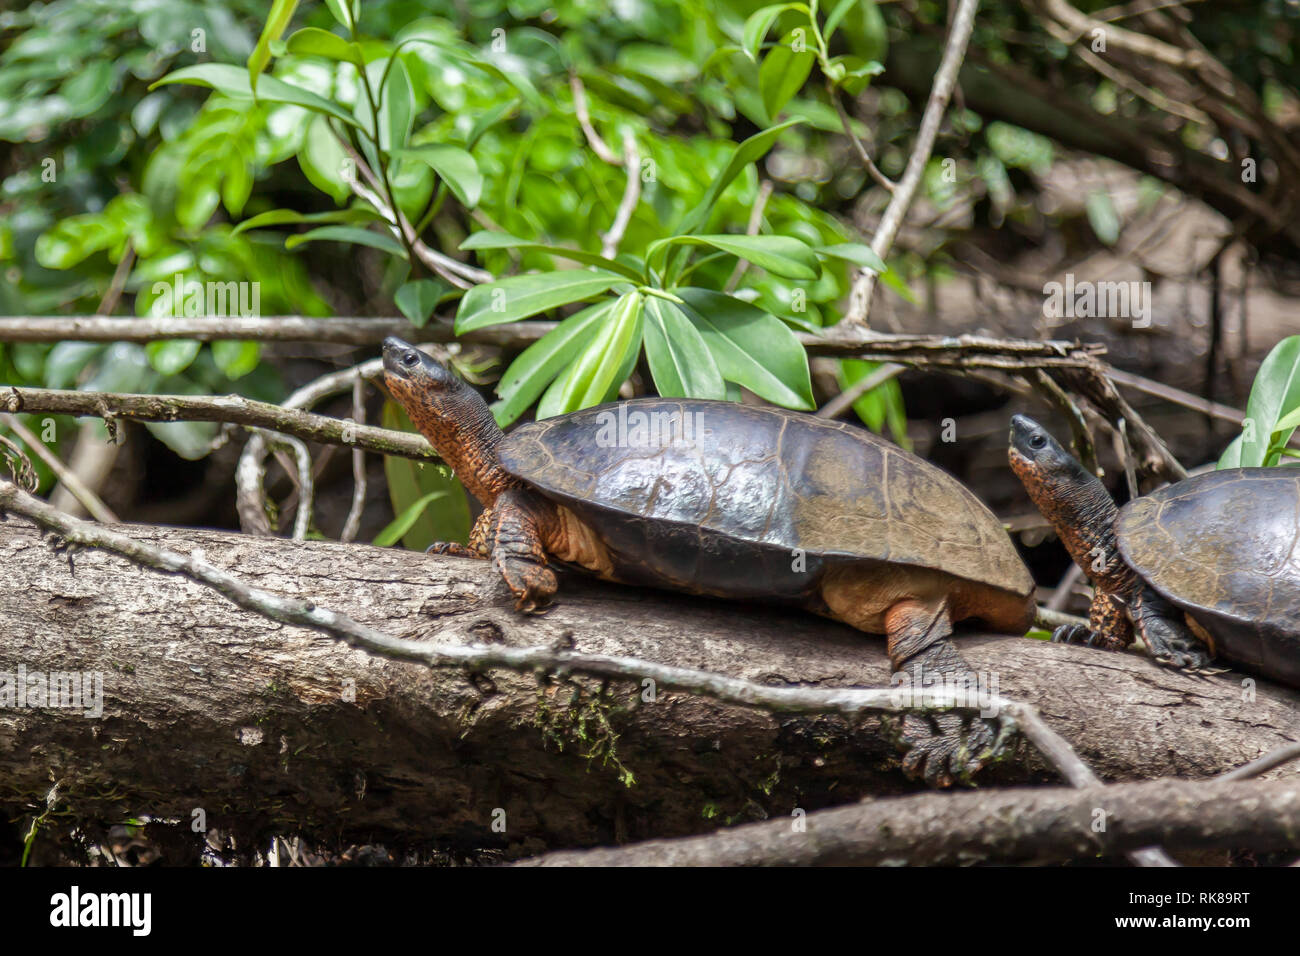 Two Black River Turtles (Rhinoclemmys funerea) resting on the tree chunk in Tortuguero National Park in Costa Rica. - Stock Image